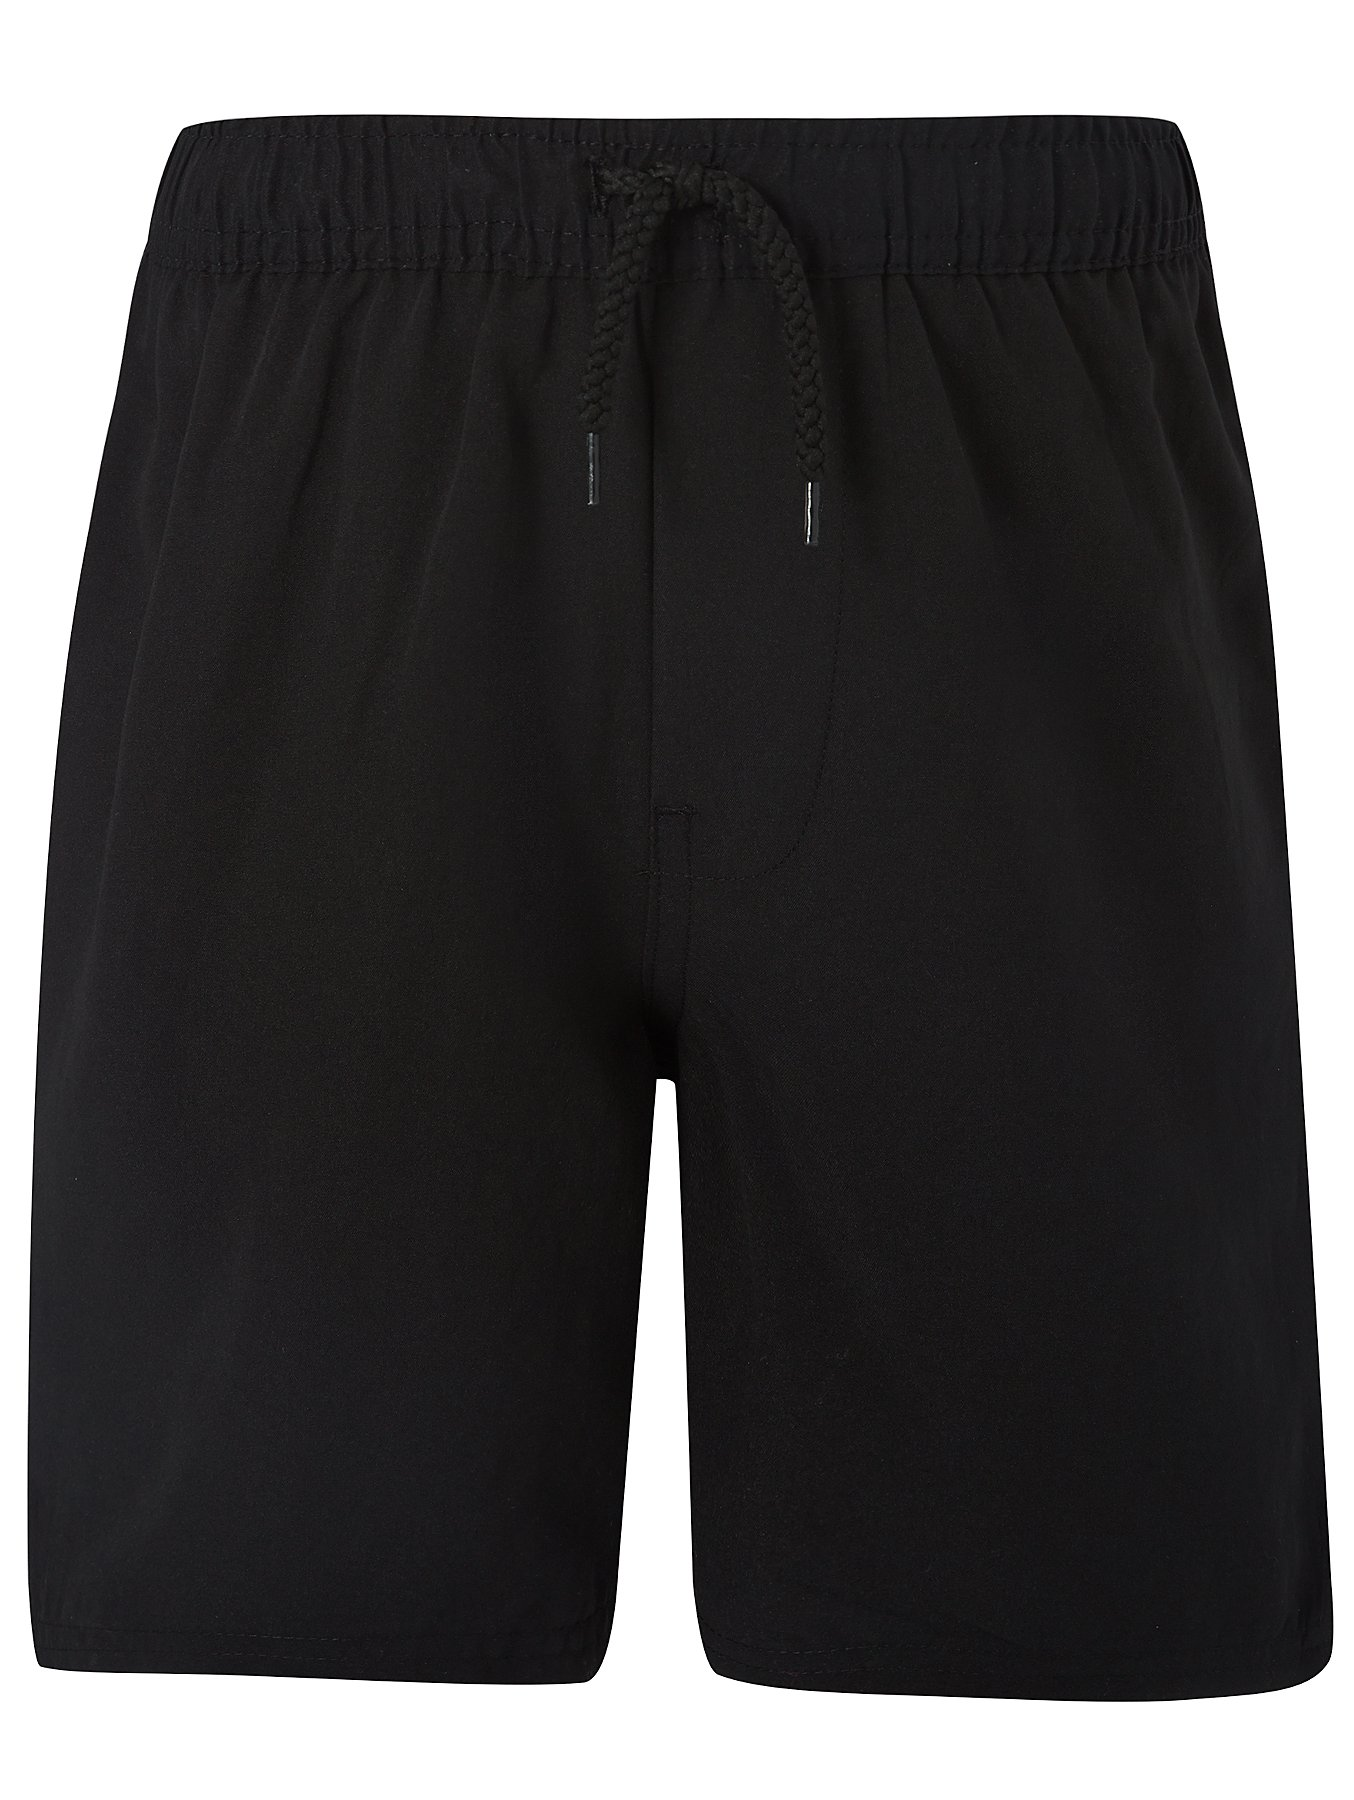 9cb9704a84 Boys Black School Swim Shorts | School | George